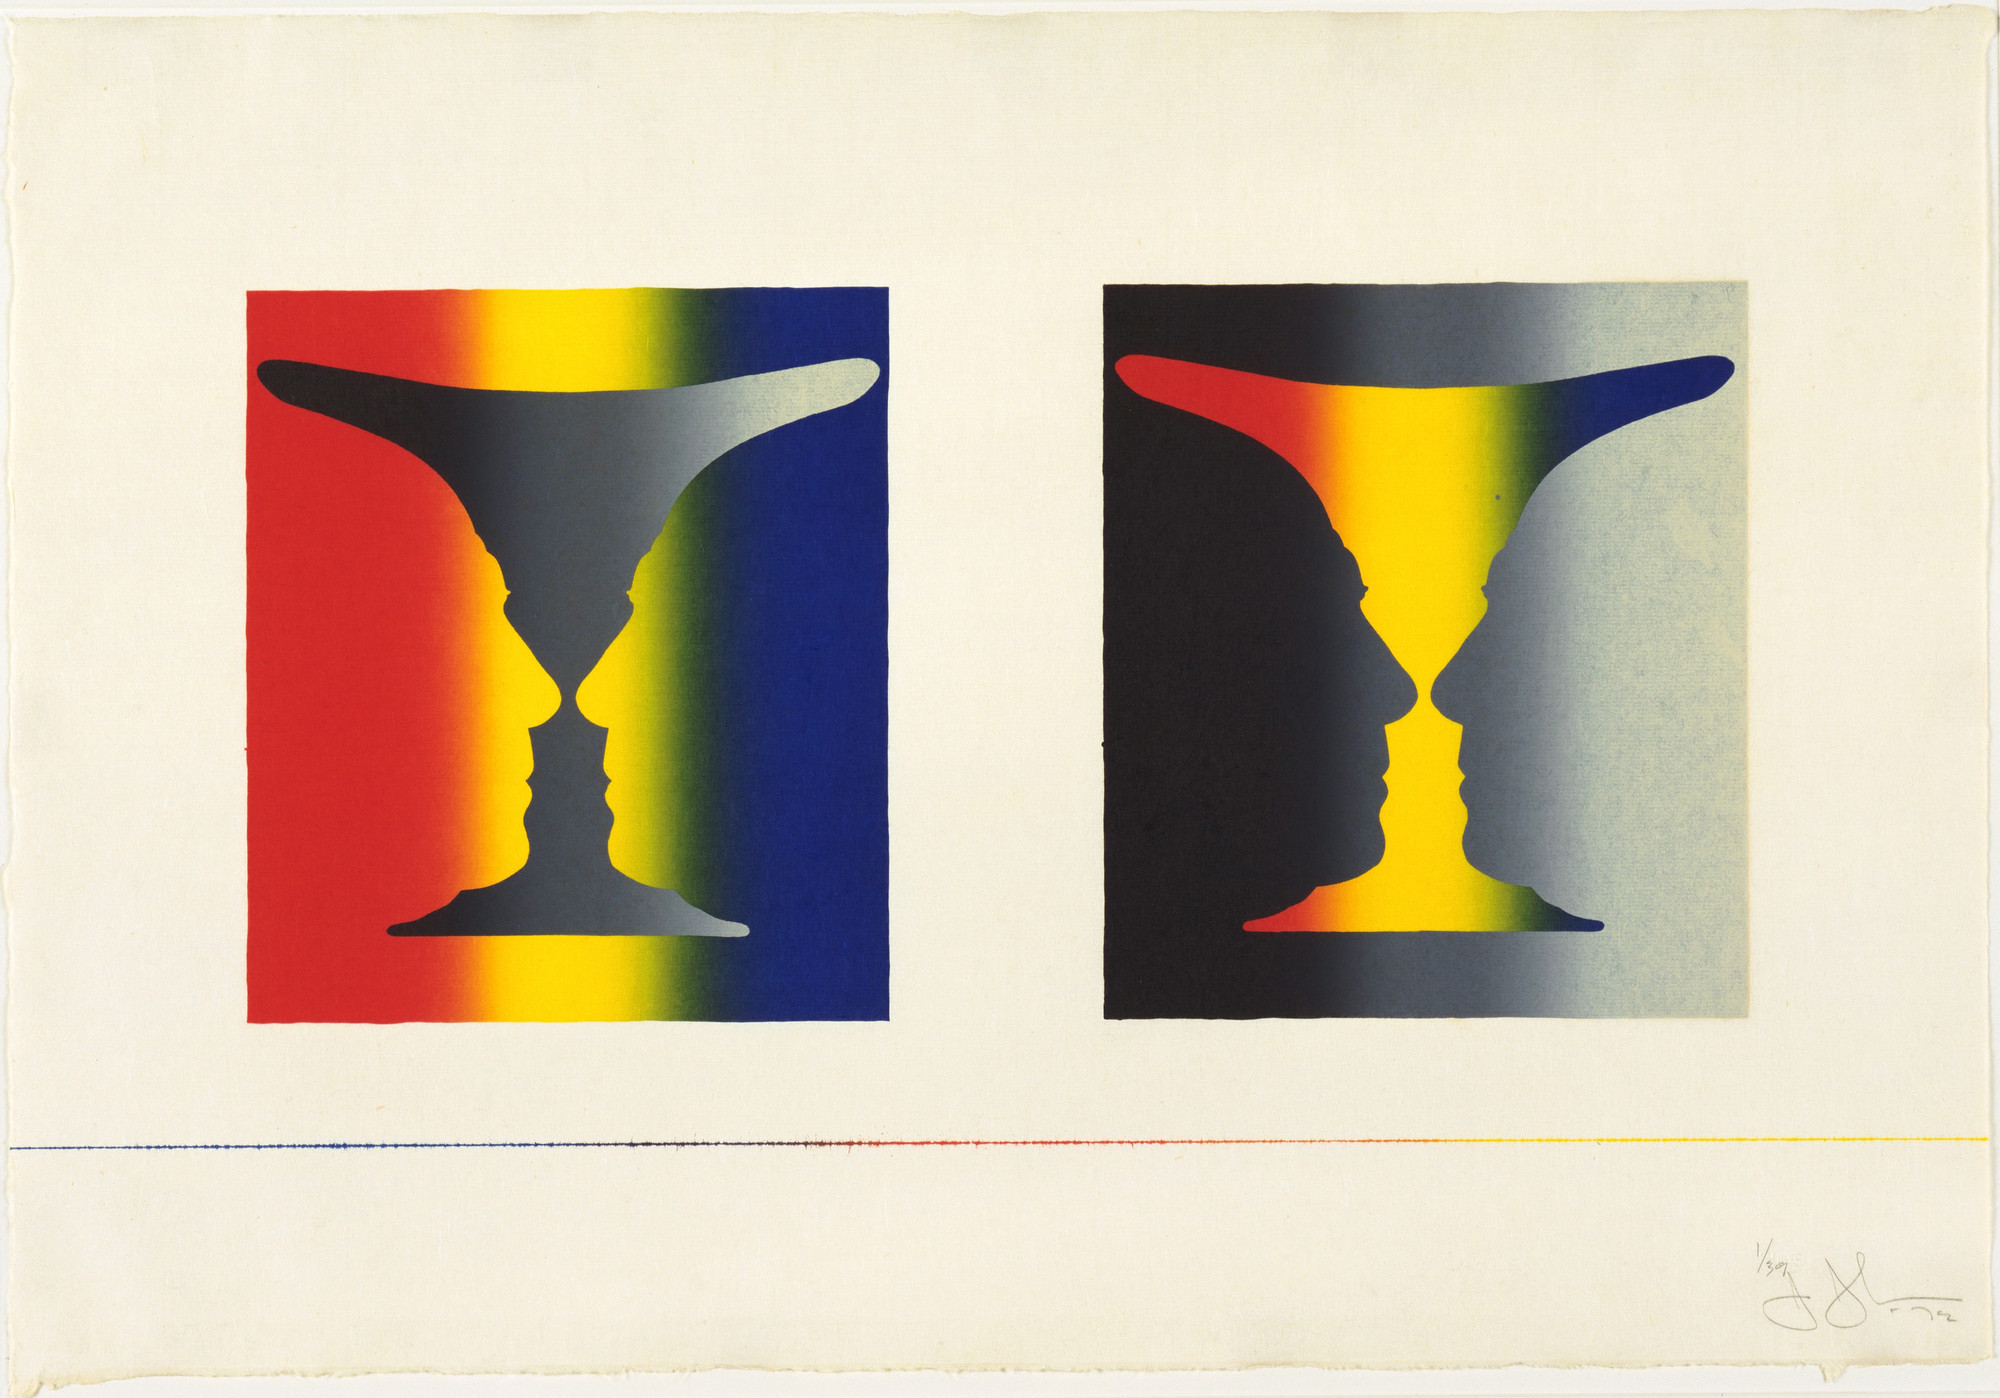 Jasper Johns. Cups 4 Picasso. 1972